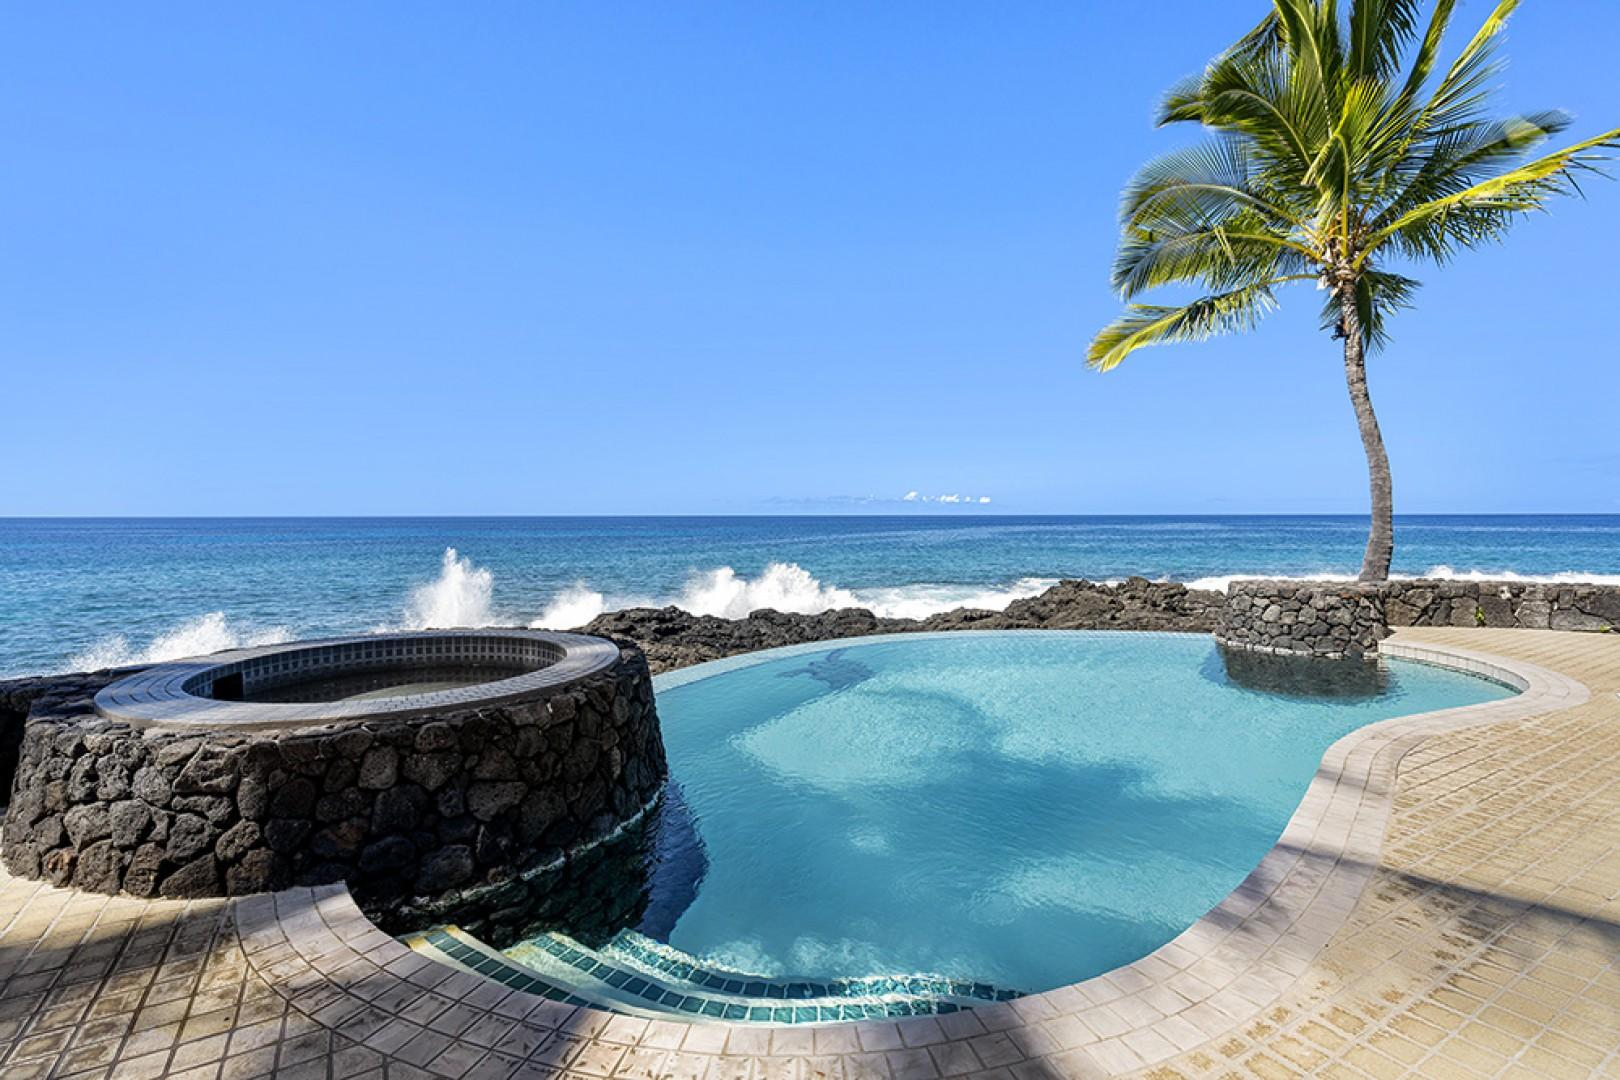 Spend the day in the solar infinity heated pool